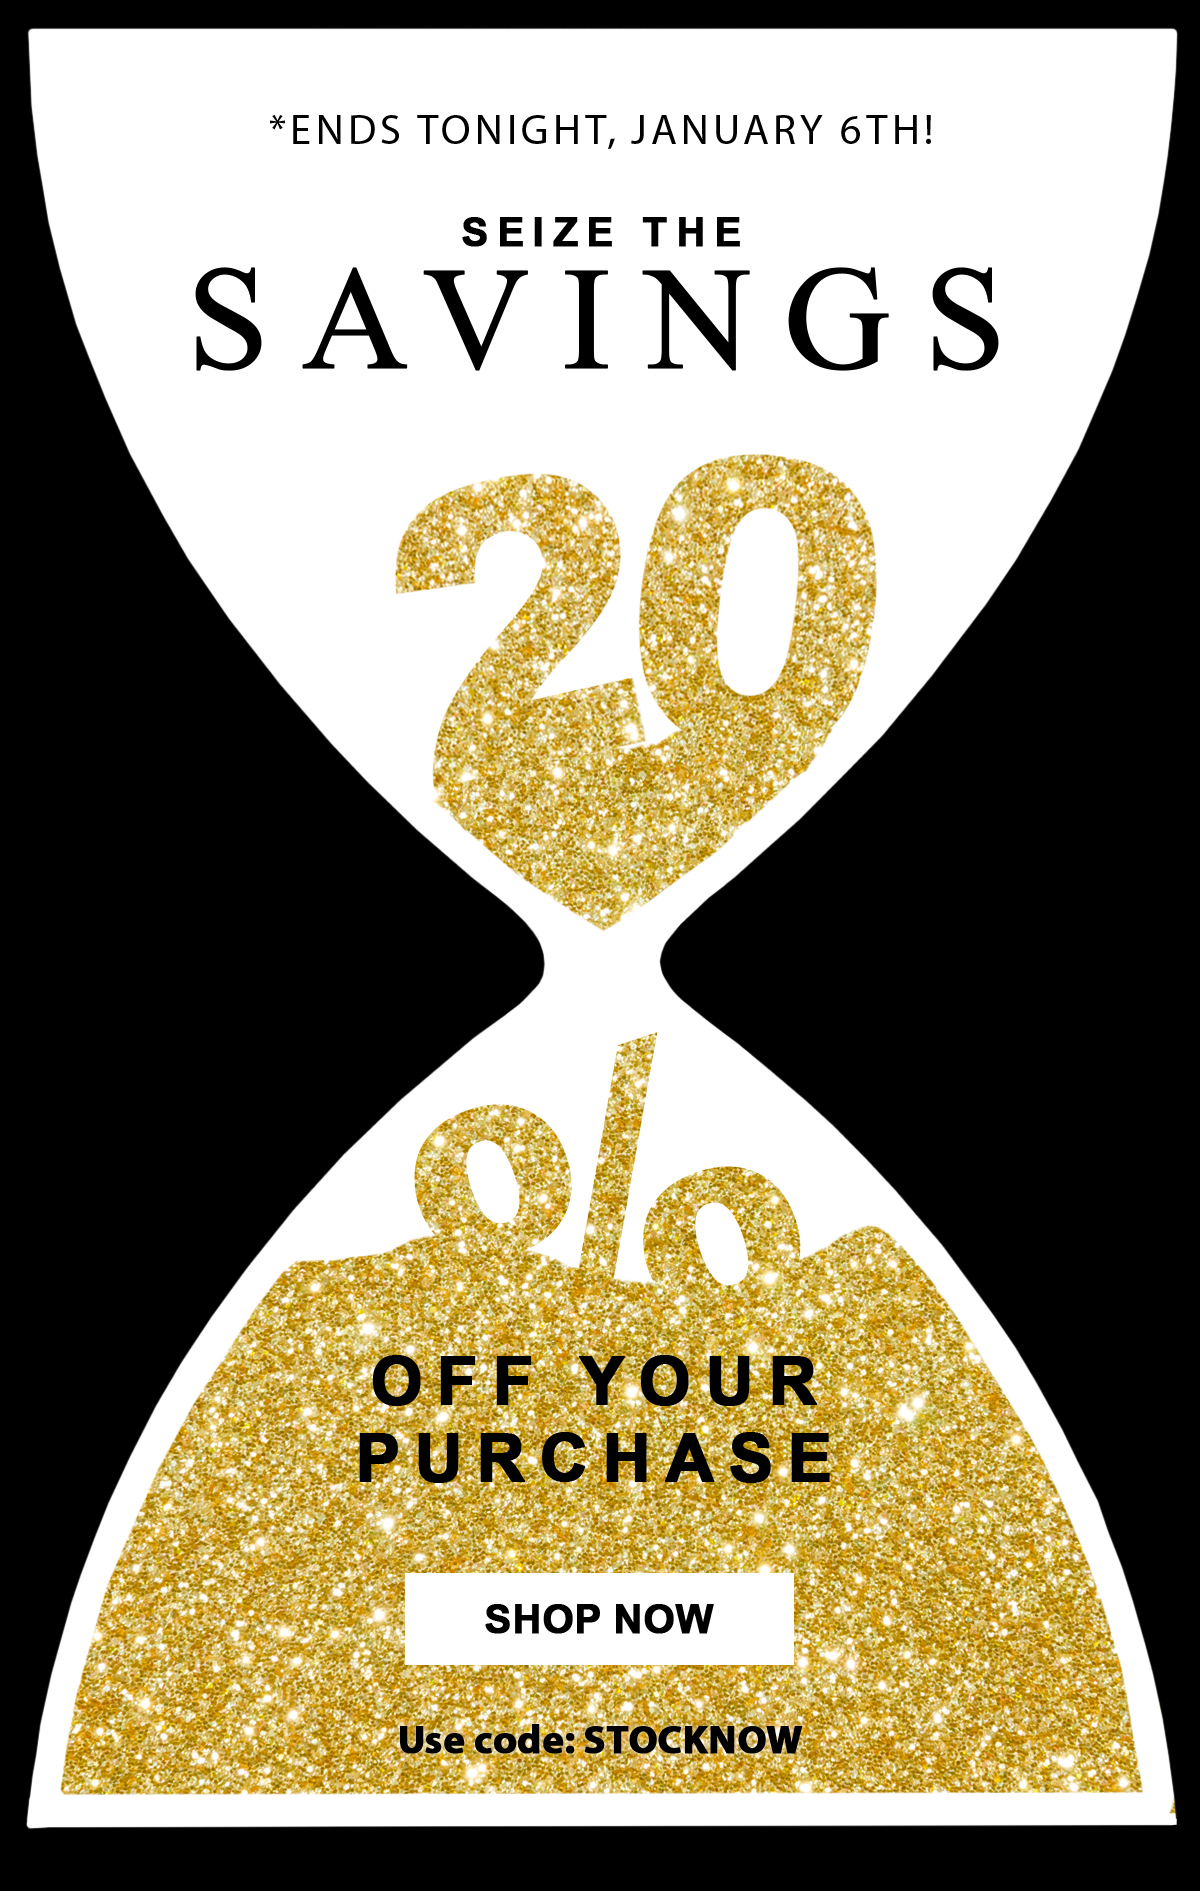 *Ends tonight, January 6th!  Seize the Savings  20%  Off Your Purchase  Shop Now   Use code: STOCKNOW